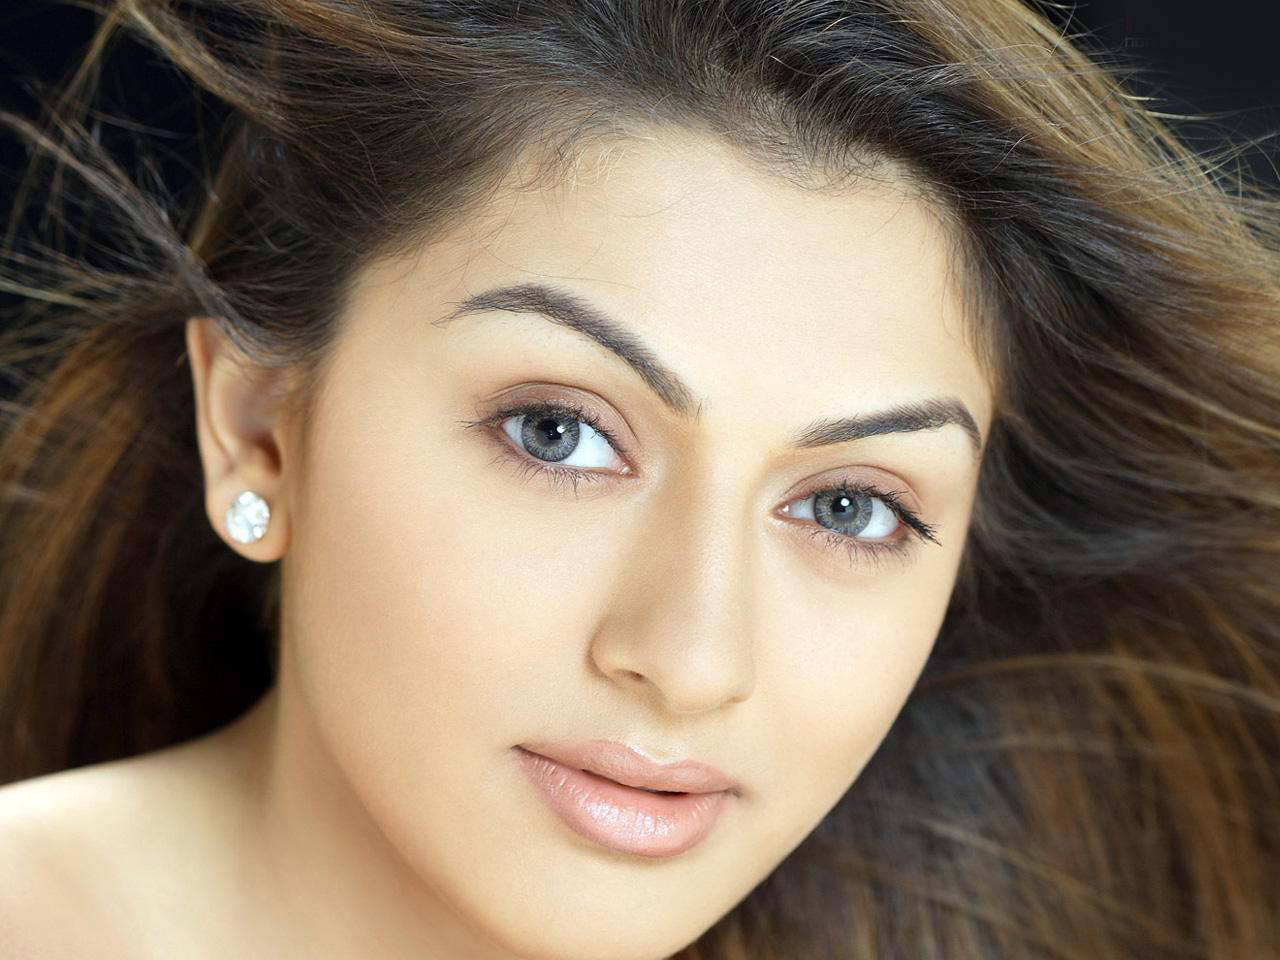 Actress Hd Wallpapers Hd Wallpapers: All HD Wallpapers (Actress): Hansika Motwani Wallpapers